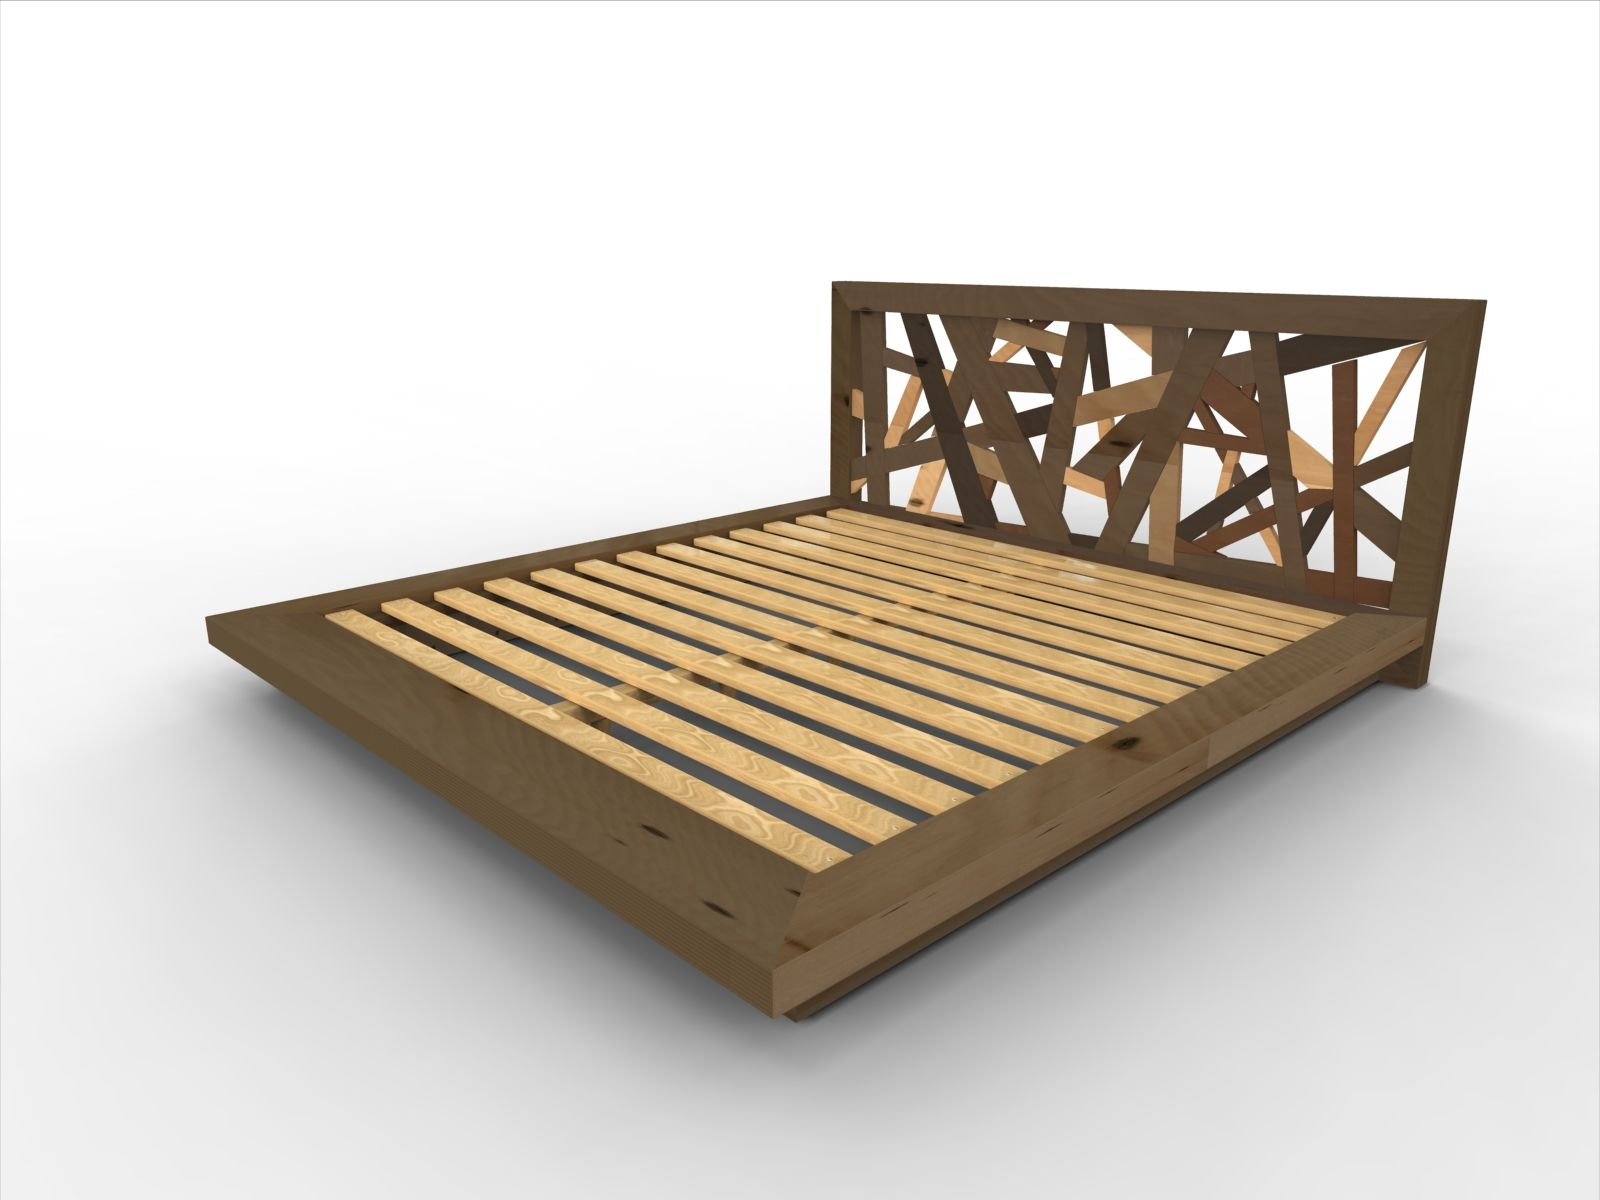 Metal bed frames with storage - Wood Metal Furniture Designs Google Search